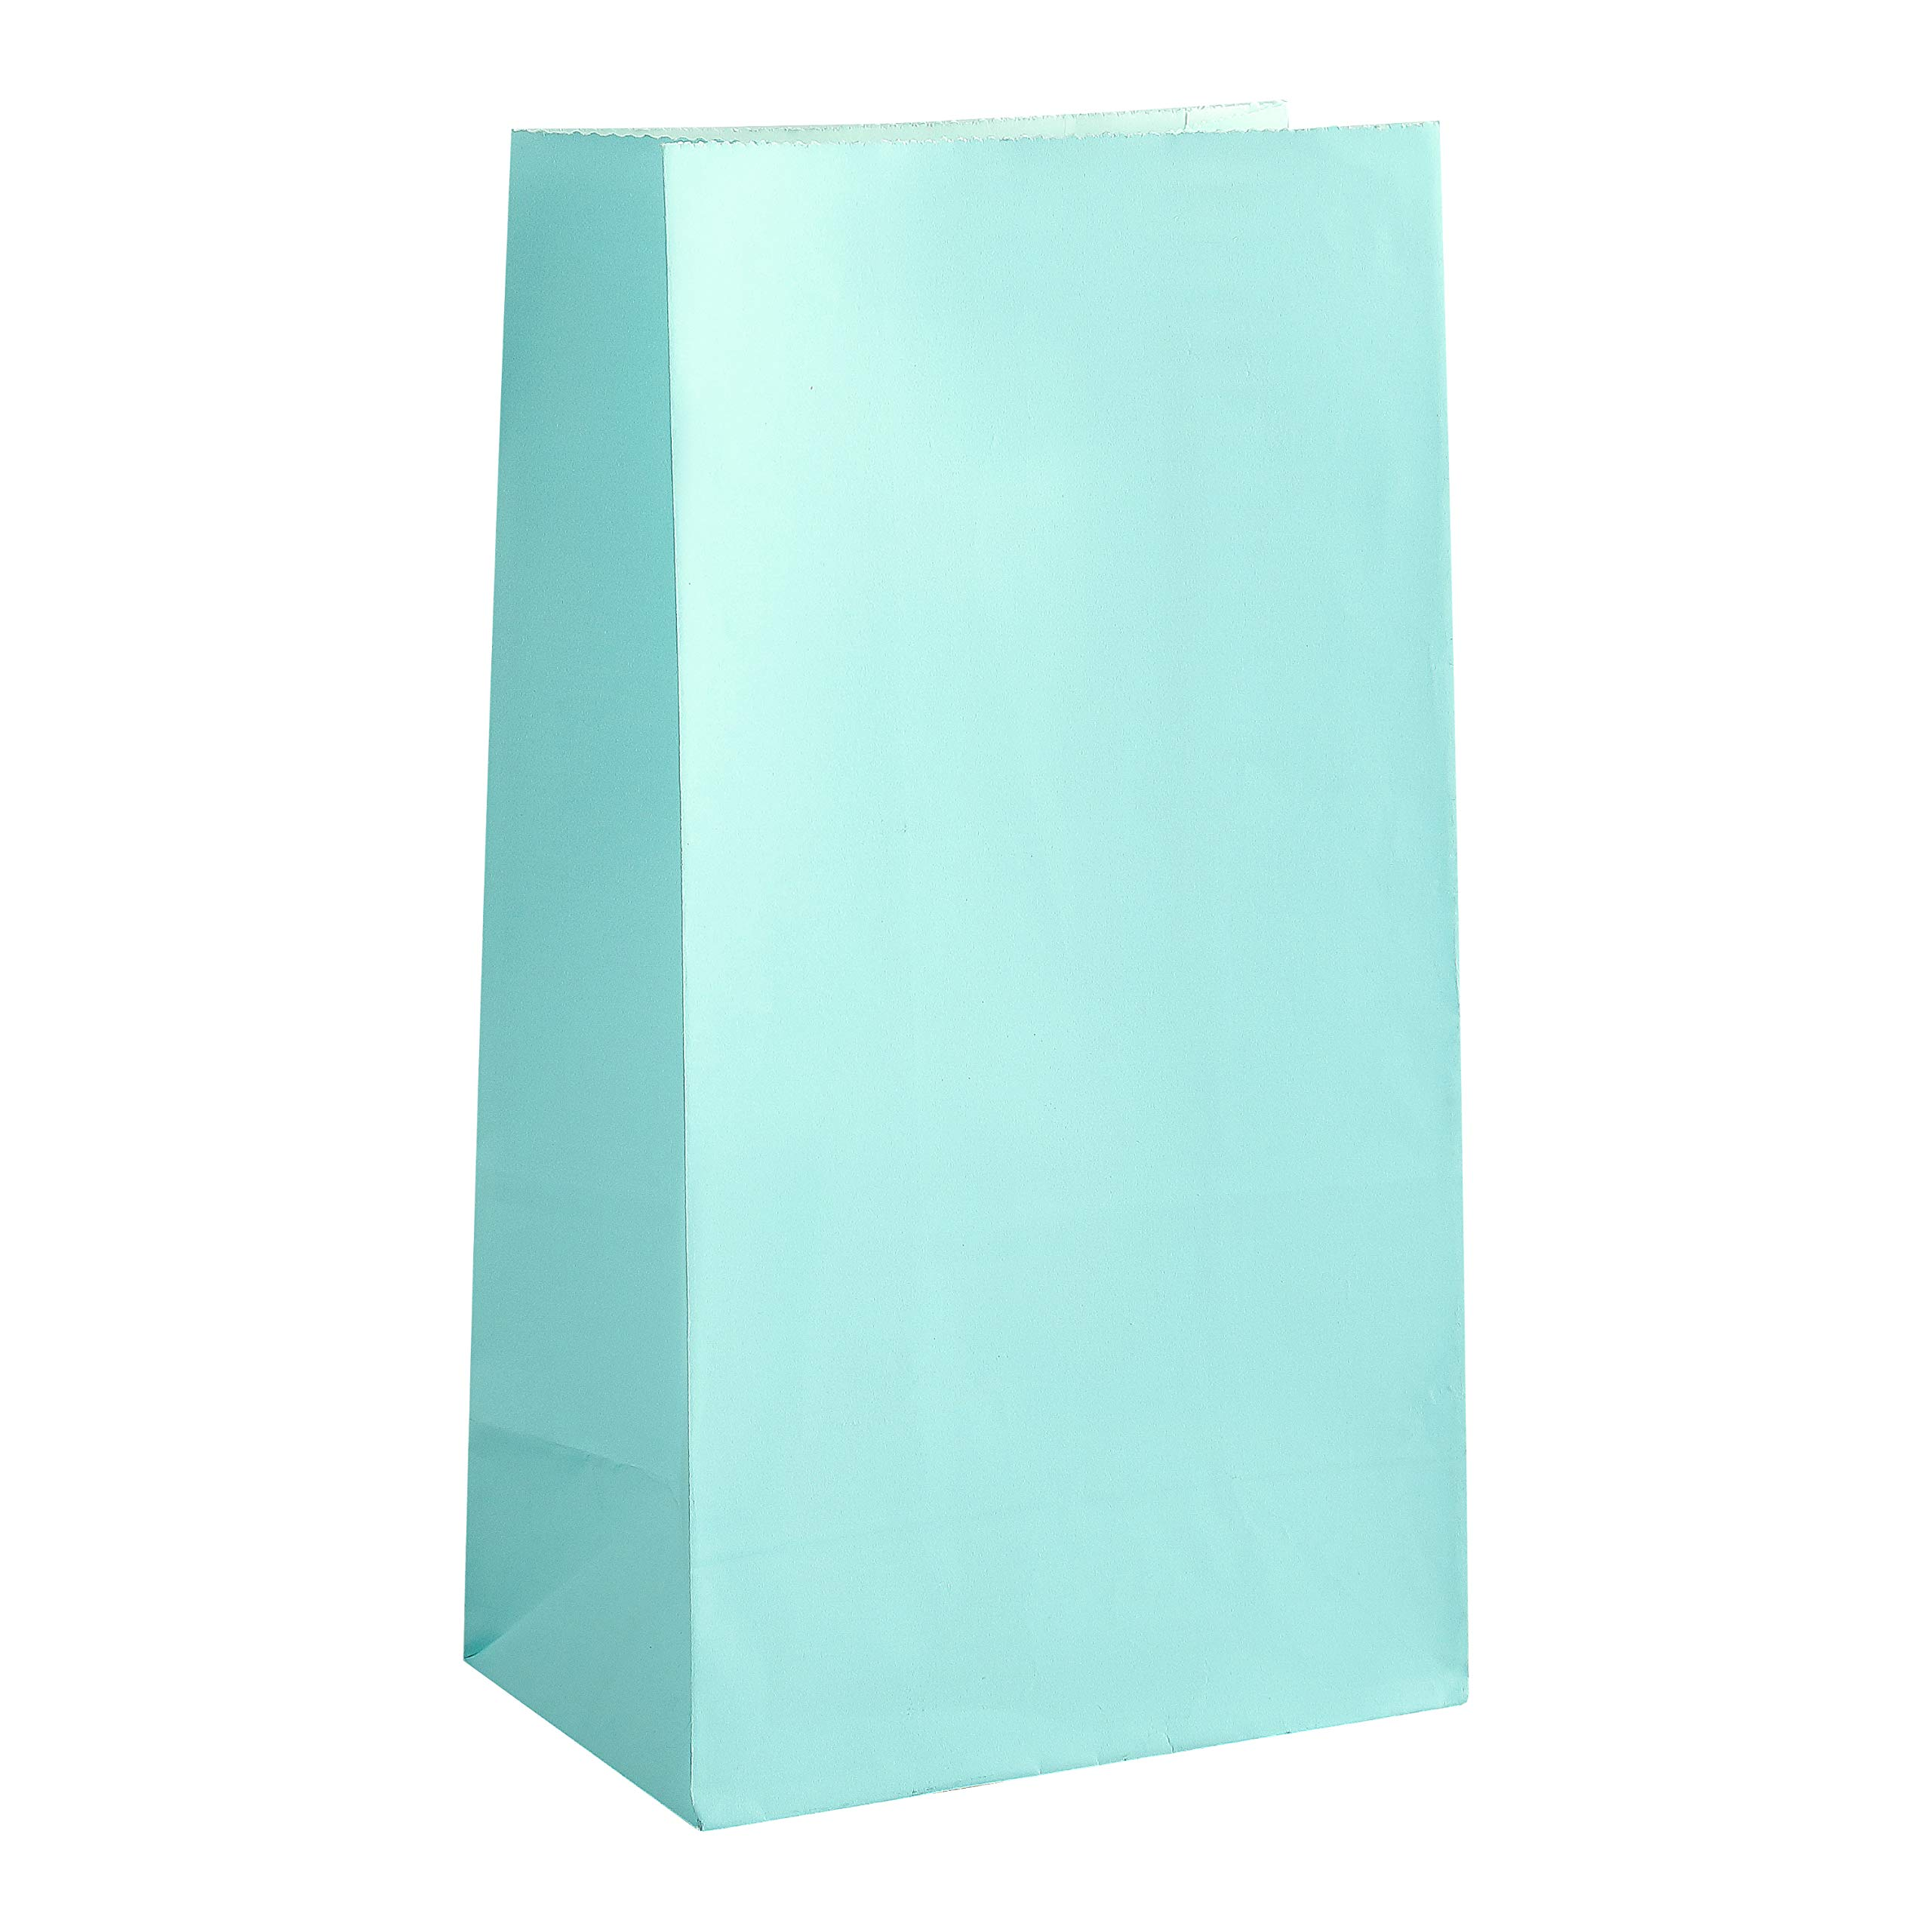 """Party Favor Bag - 50 Pack Light Teal Tiffany Blue Food Grade Paper Lunch Gift Bags for 1st Birthday, Easter or Baby Shower - 5""""x3""""x9"""""""